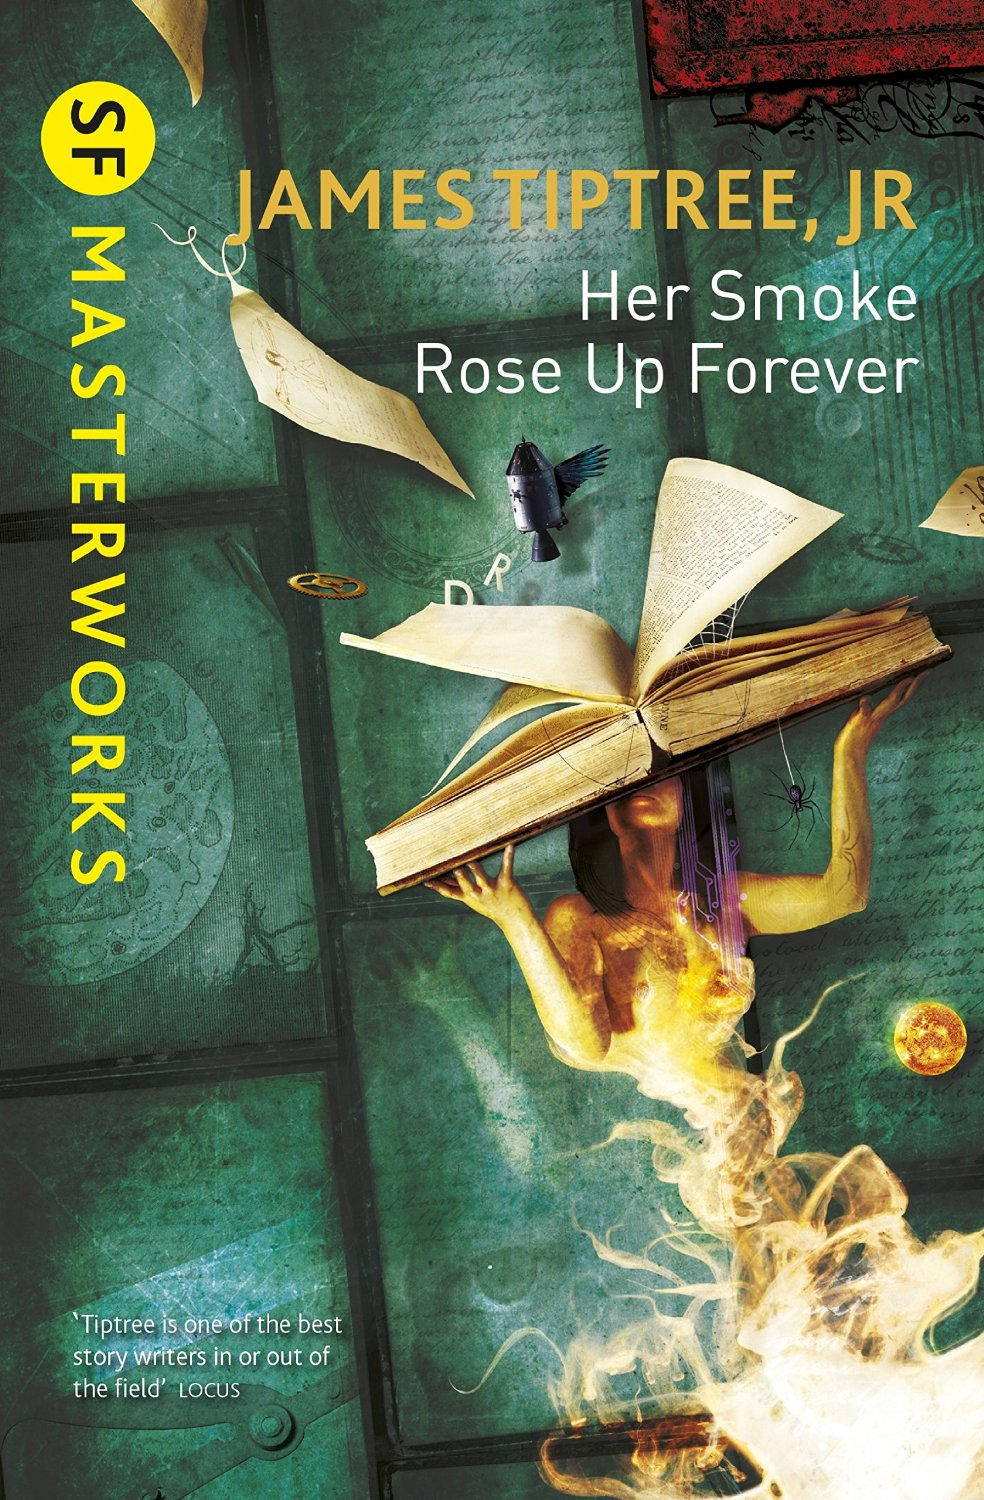 James Tiptree Jr.: Her Smoke Rose Up Forever